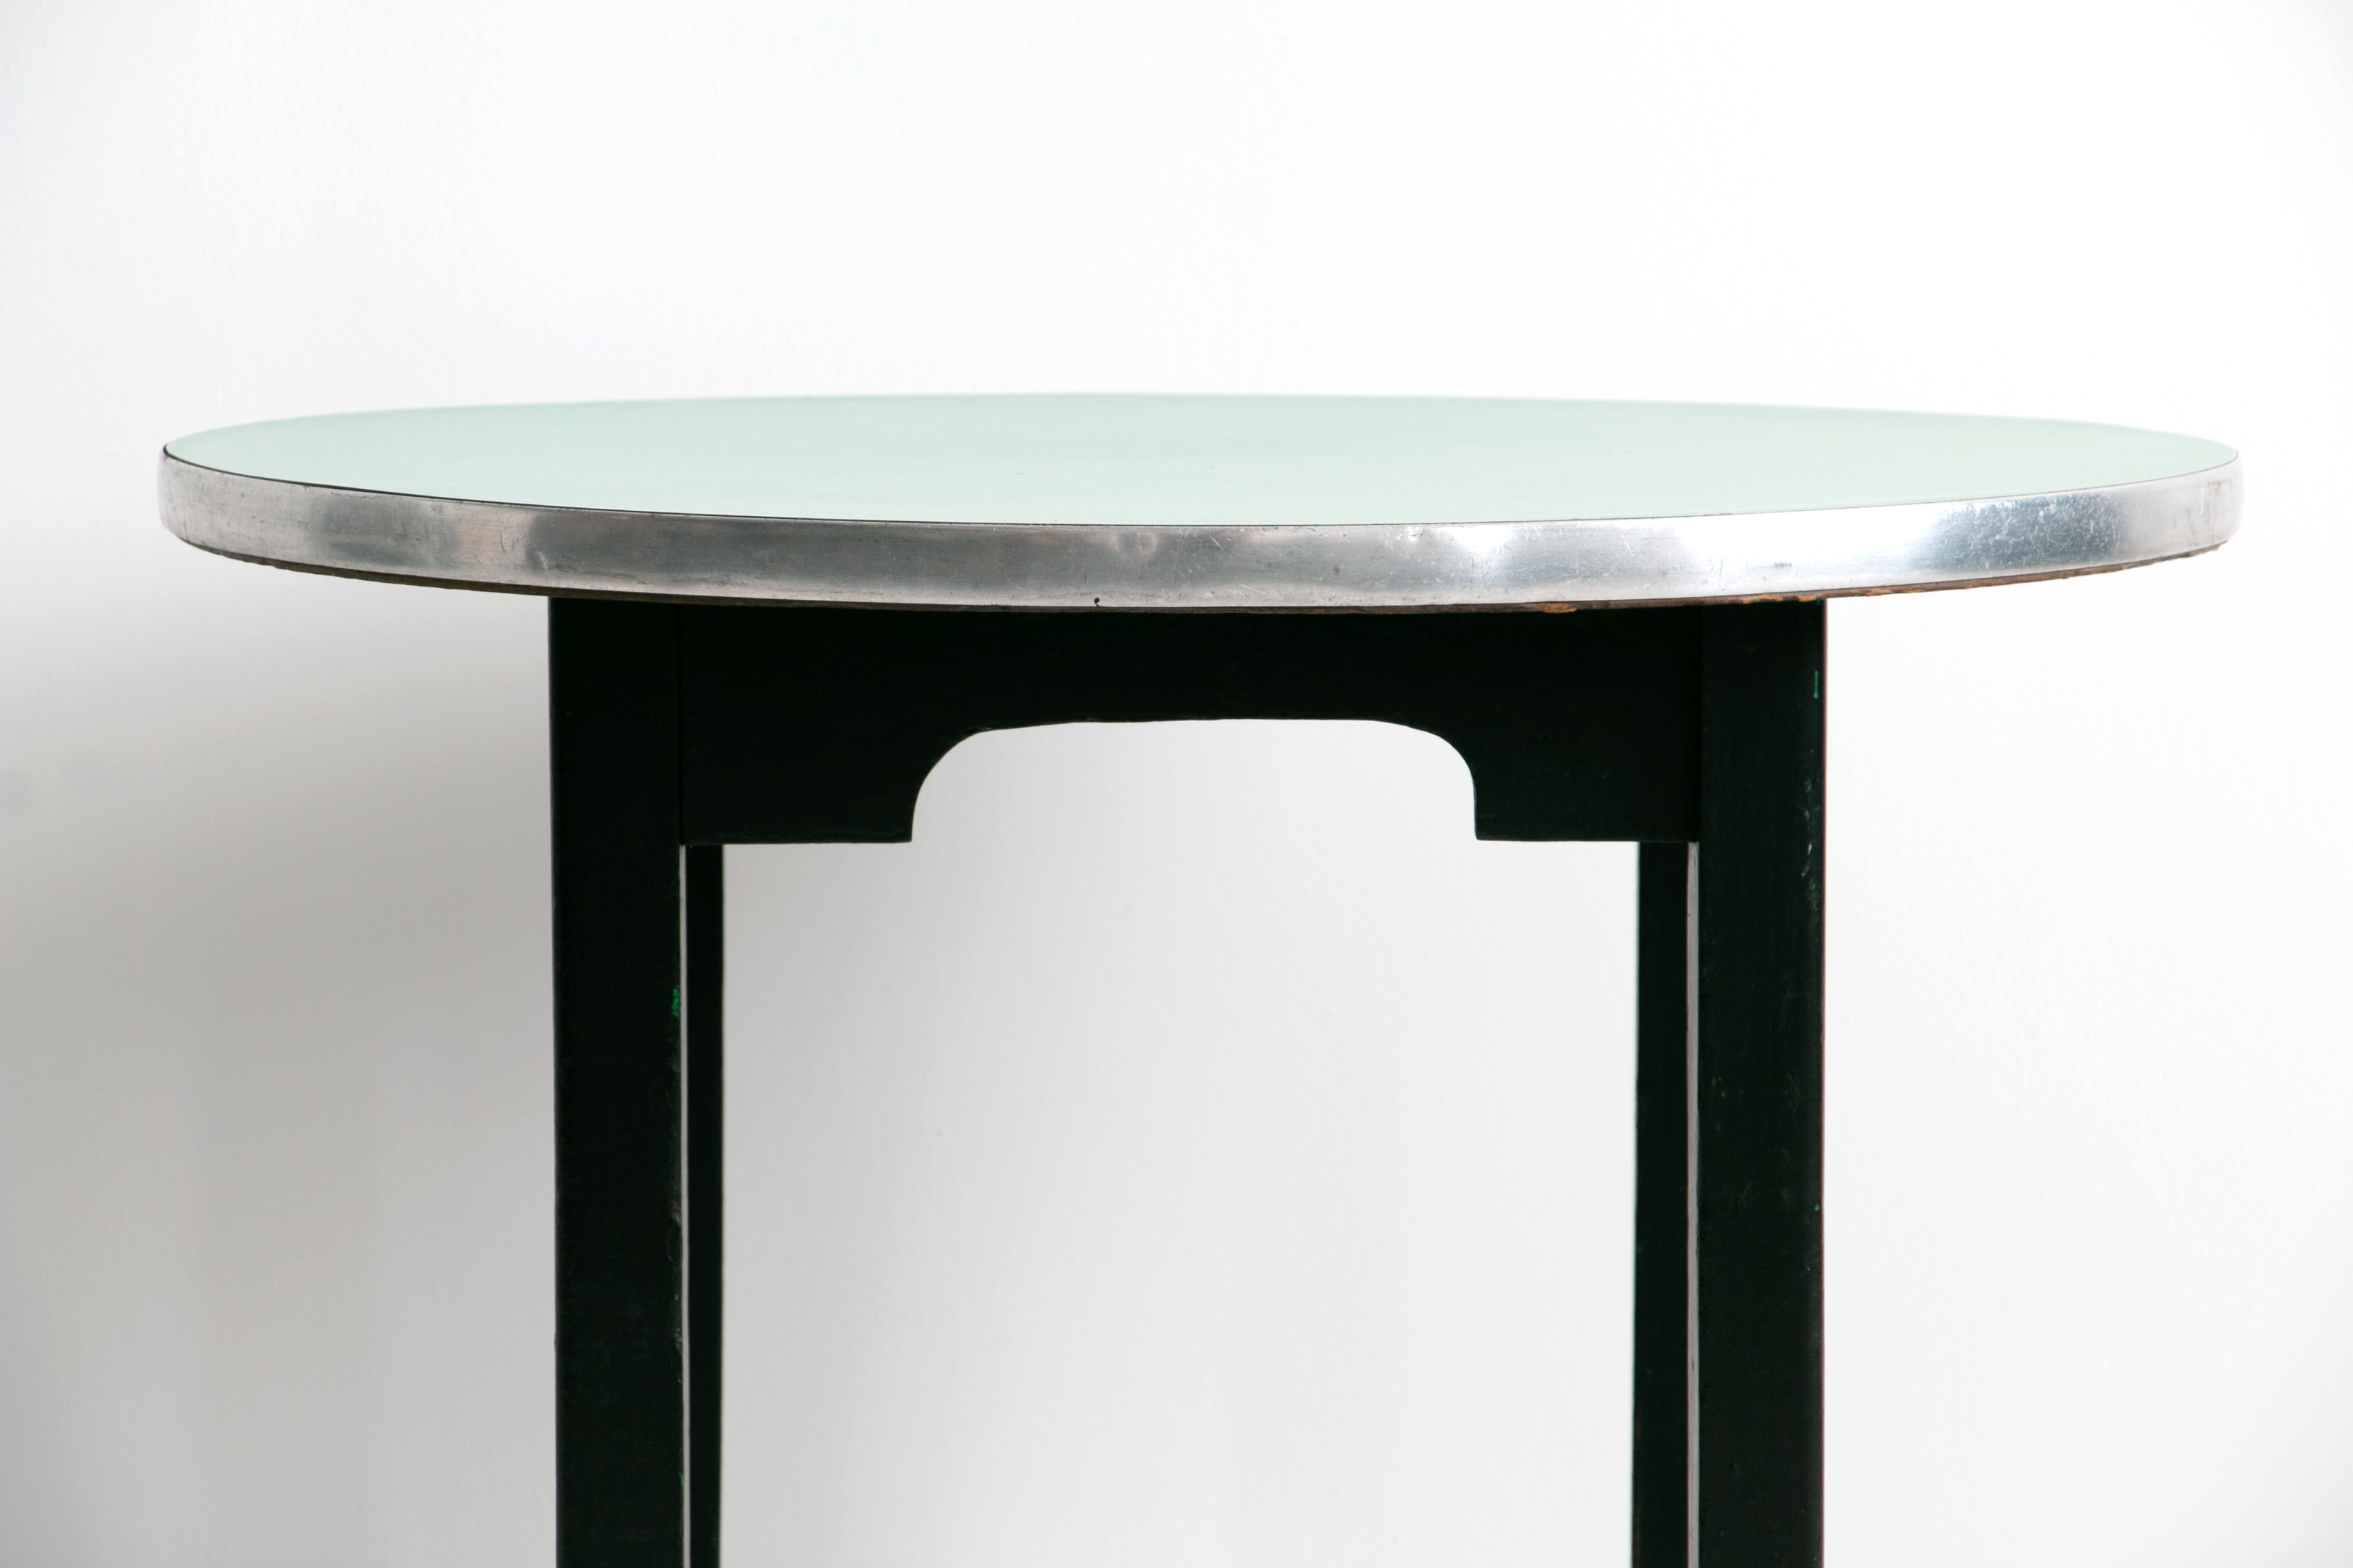 Vintage Mid Century Occassional Table with Asian Legs and Turquoise Formica Top // Asian Modern, 1950's - 1960's, Beatnick, Retro, Bohemian